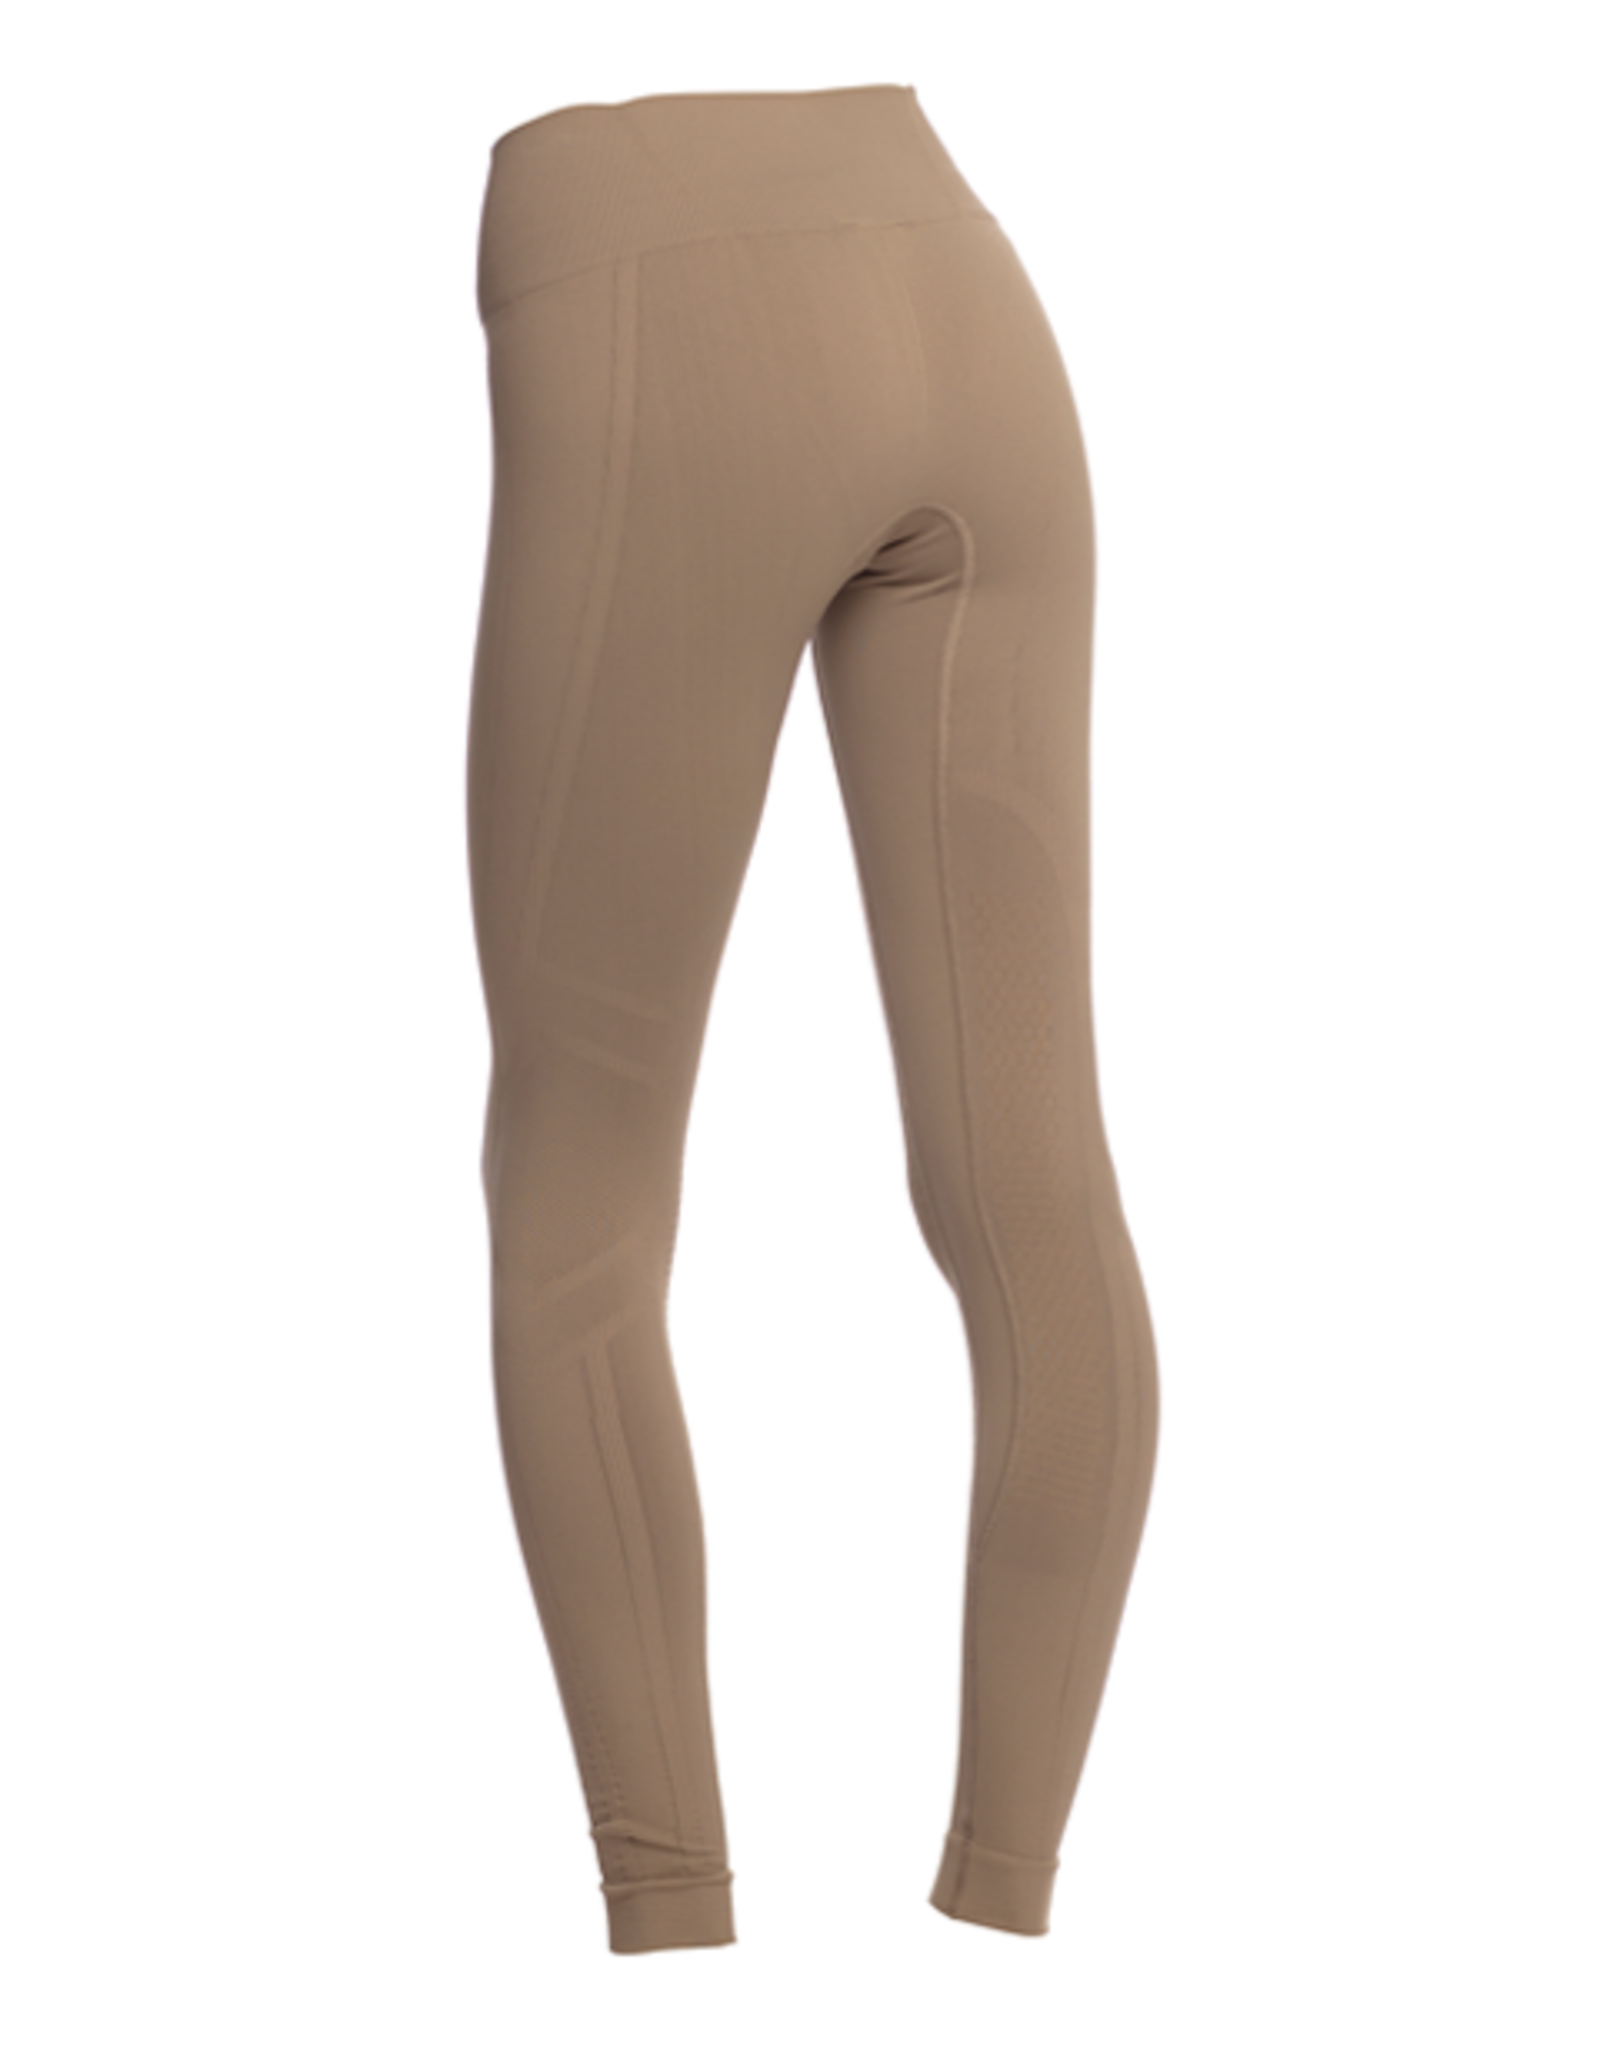 Goode Rider Kids' Seamless Knee Patch Tights